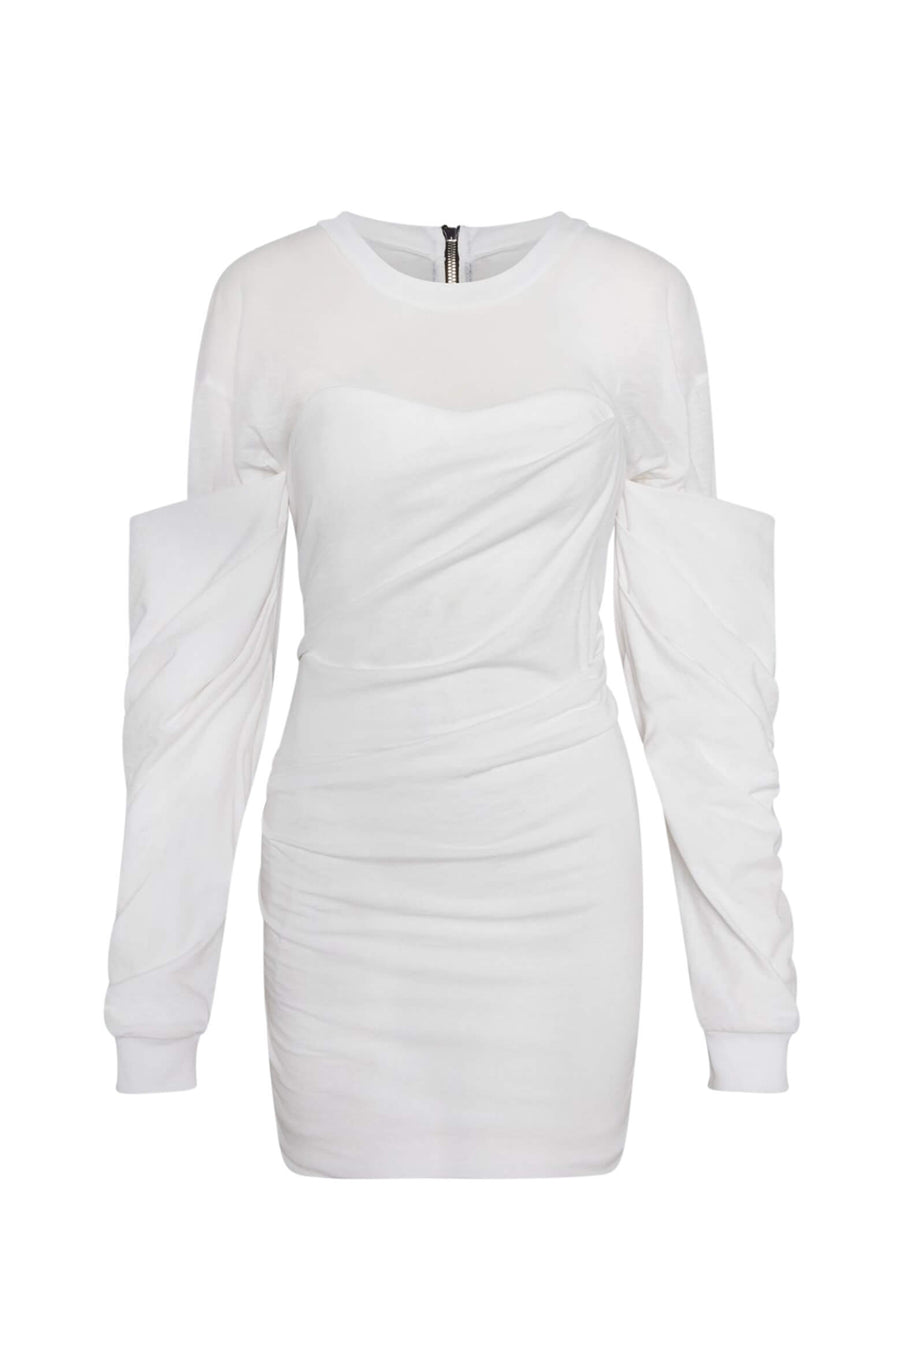 RtA Indya Mini Dress Women's at The New Trend